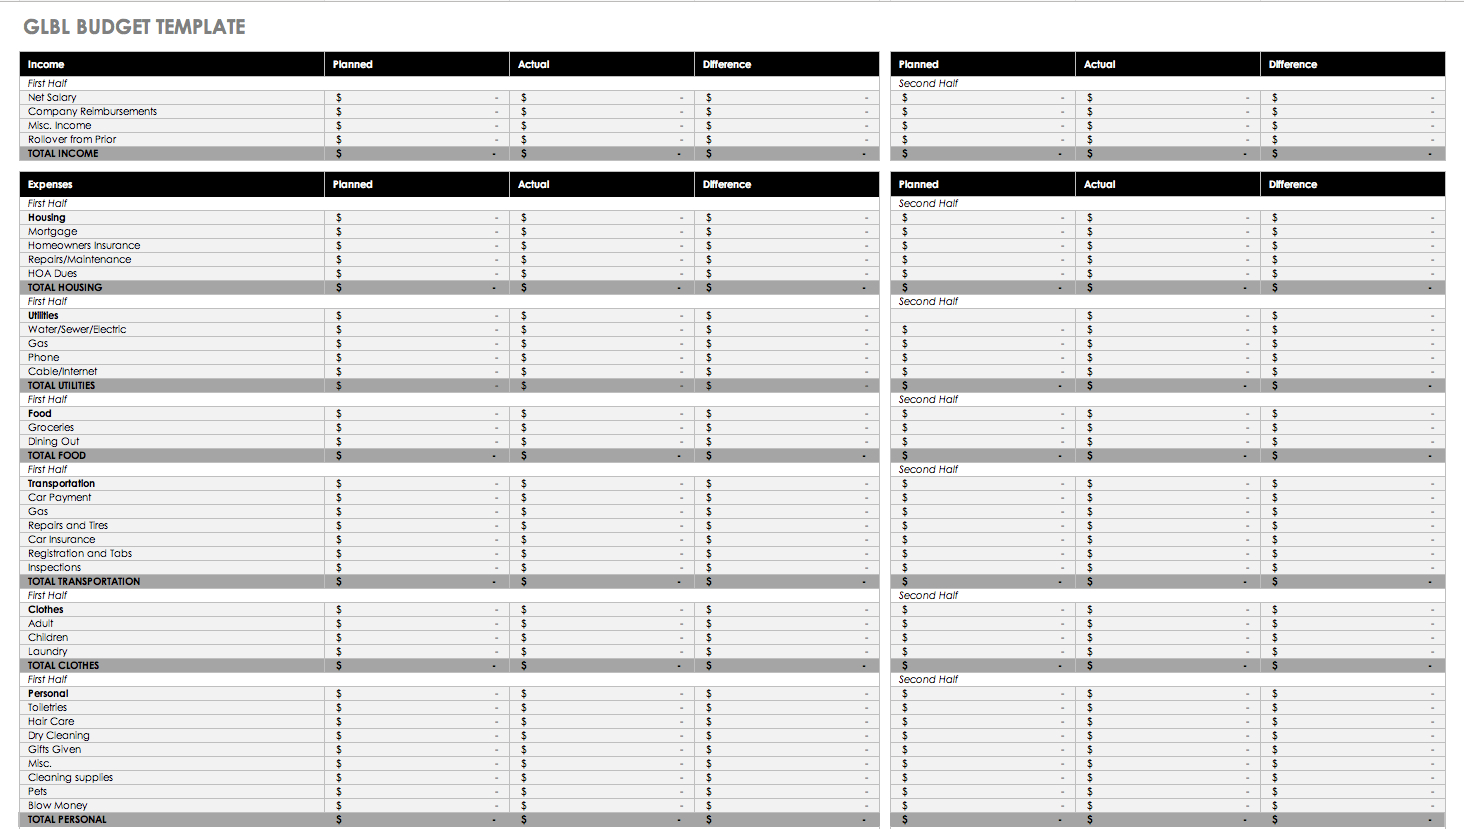 Budget Expenses Spreadsheet With Regard To Free Budget Templates In Excel For Any Use